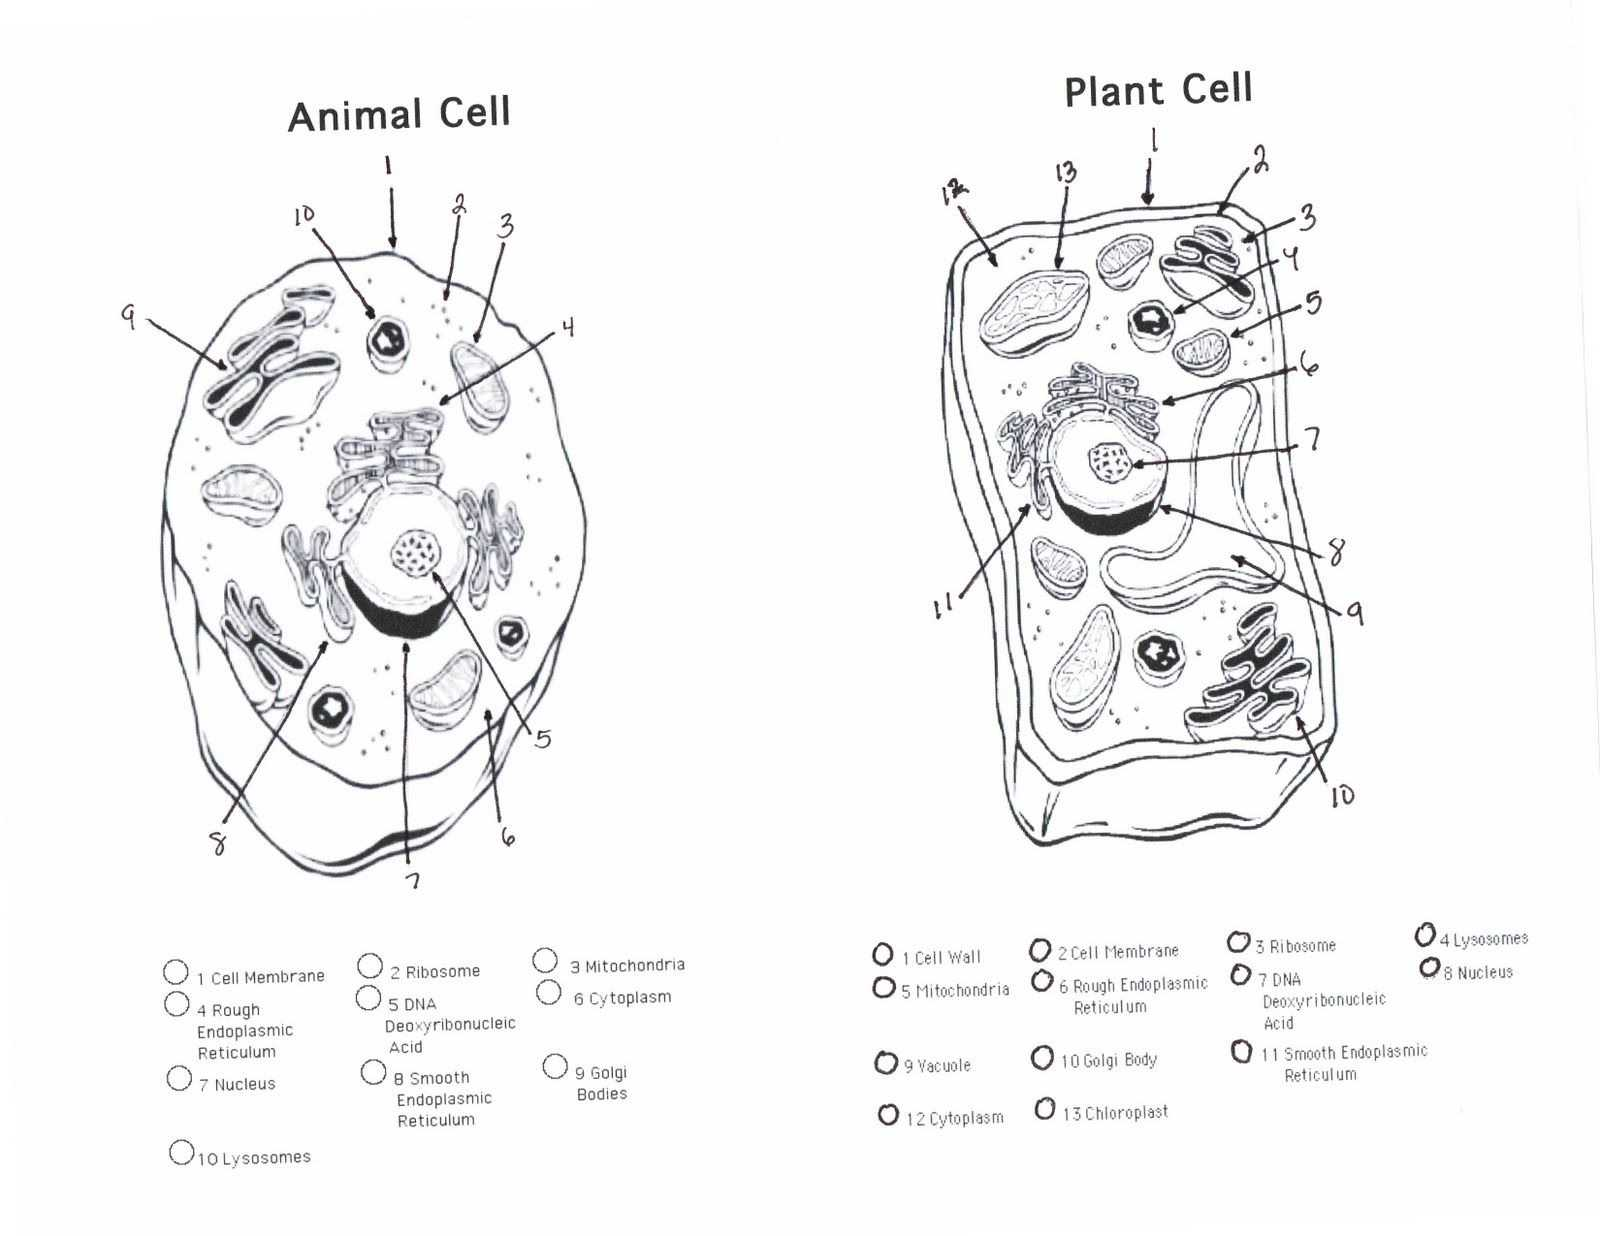 Cellular Structure and Function Worksheet together with Diagram Plant Cell Unique Plant Cell Diagram Worksheet Diagram